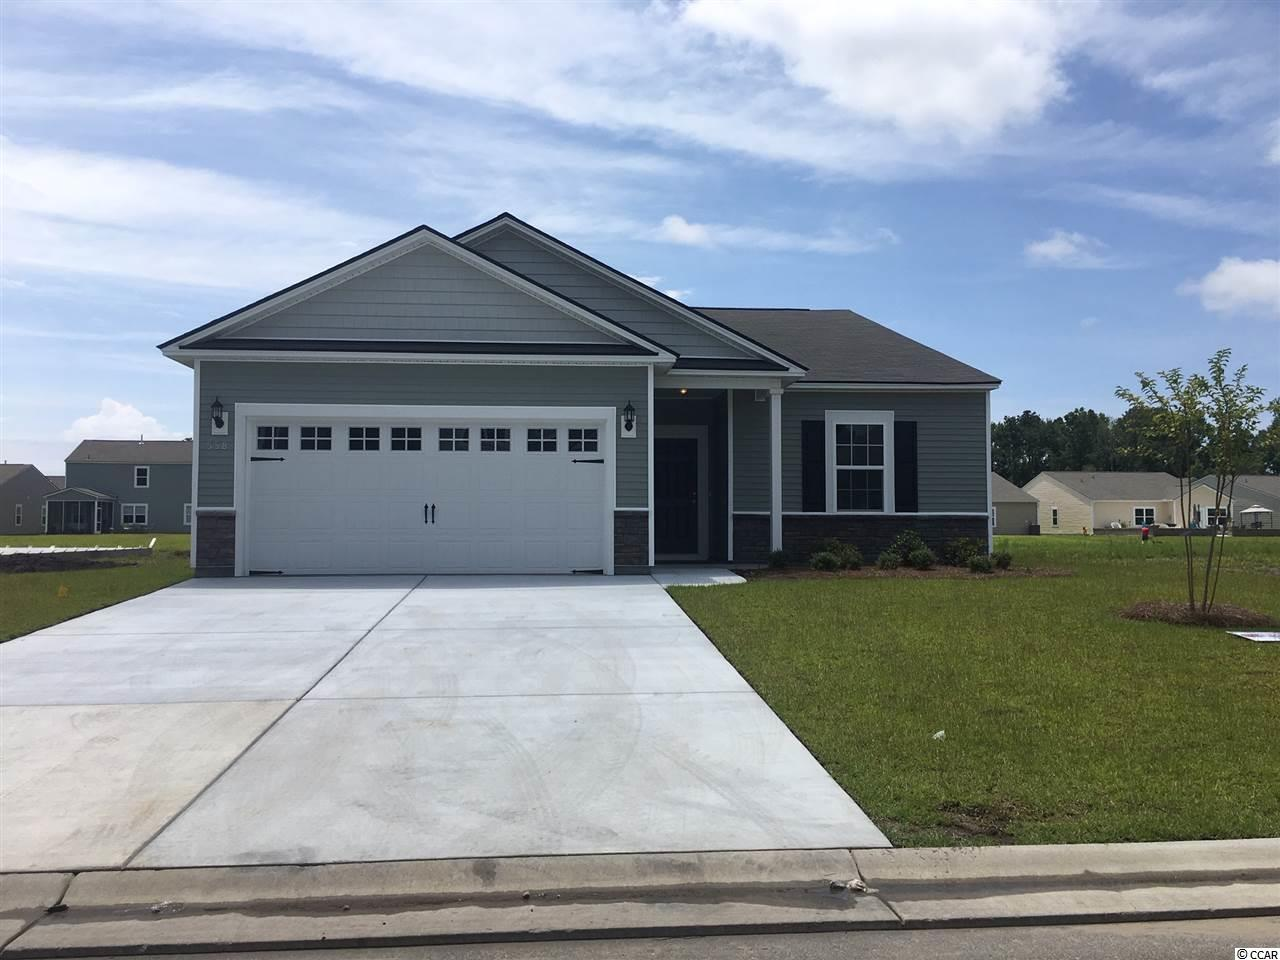 Come and see this one level 3 bedroom, 2 bath home with an extra den or office area. This home located on a pond has a covered lanai. This is a must see!